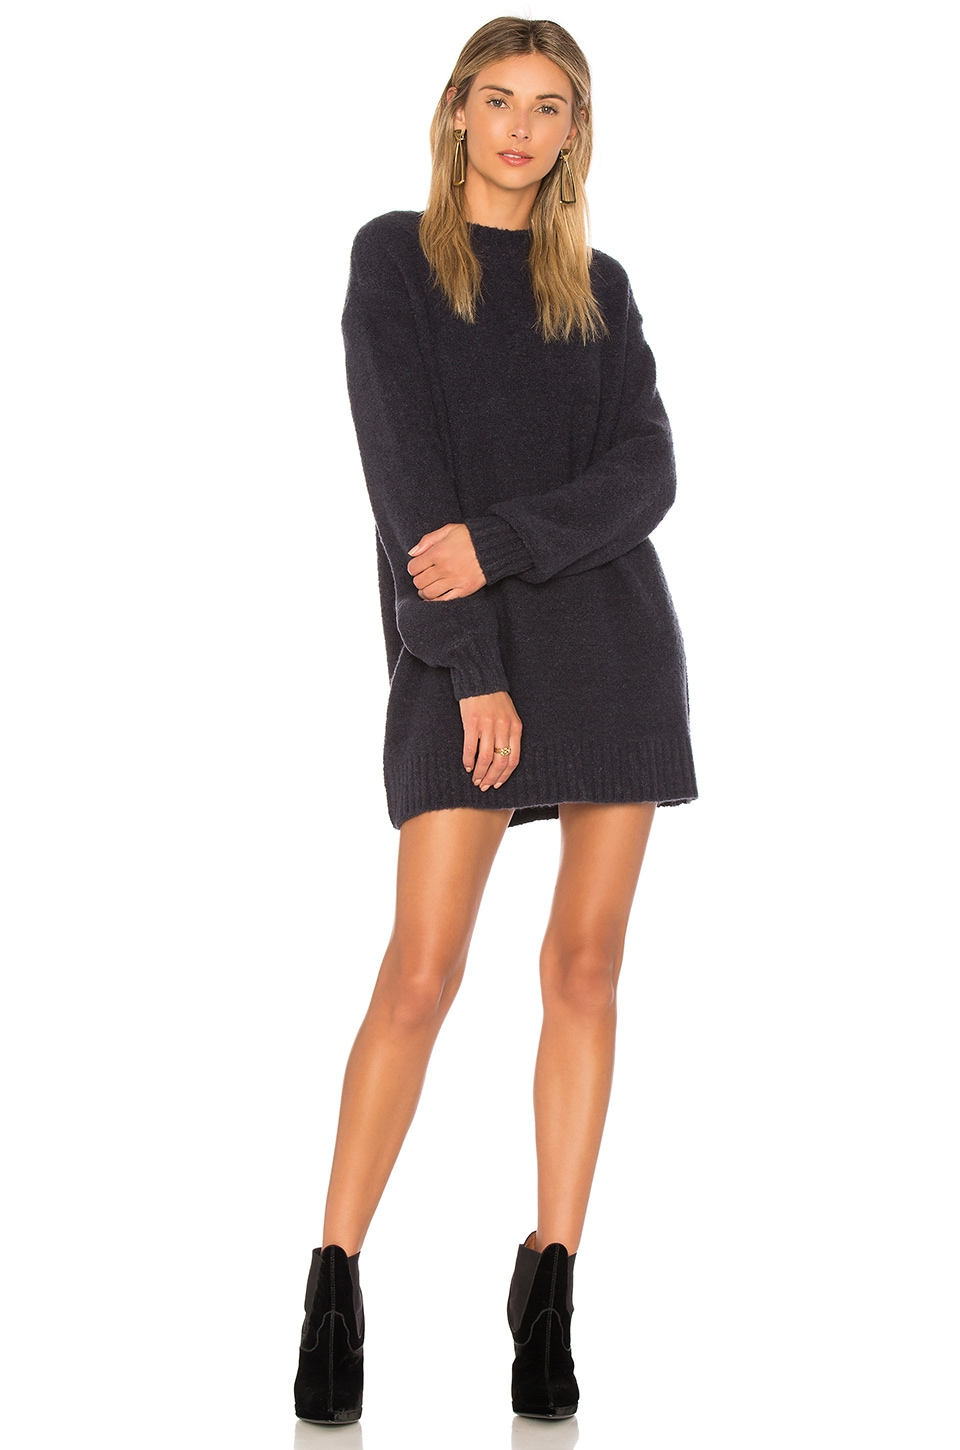 Lovers + Friends Suki Sweater Dress in Navy